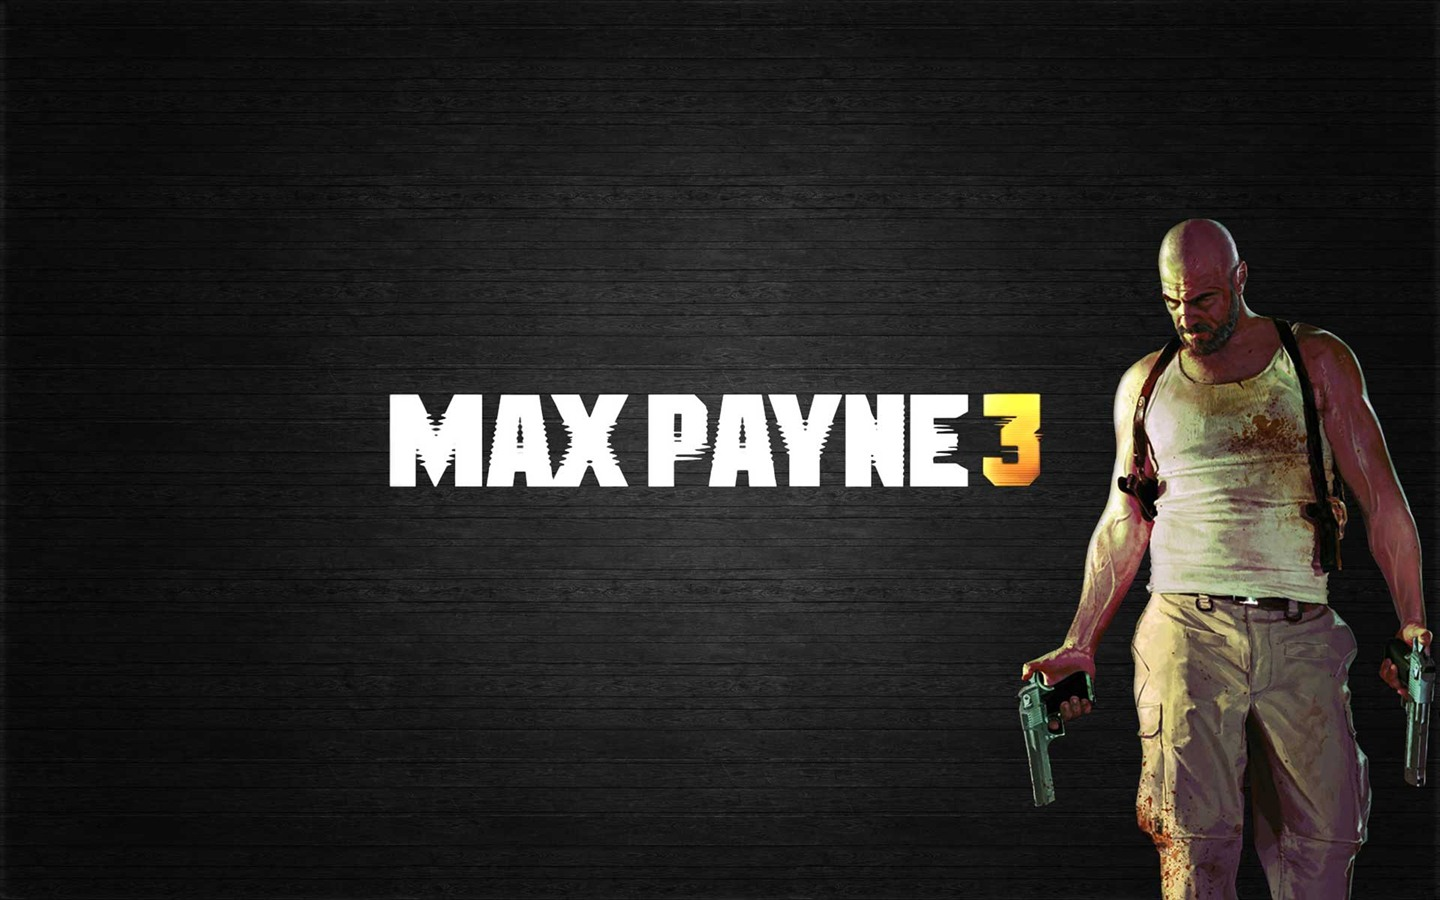 Max Payne 3 Hd Wallpapers 11 1440x900 Wallpaper Download Max